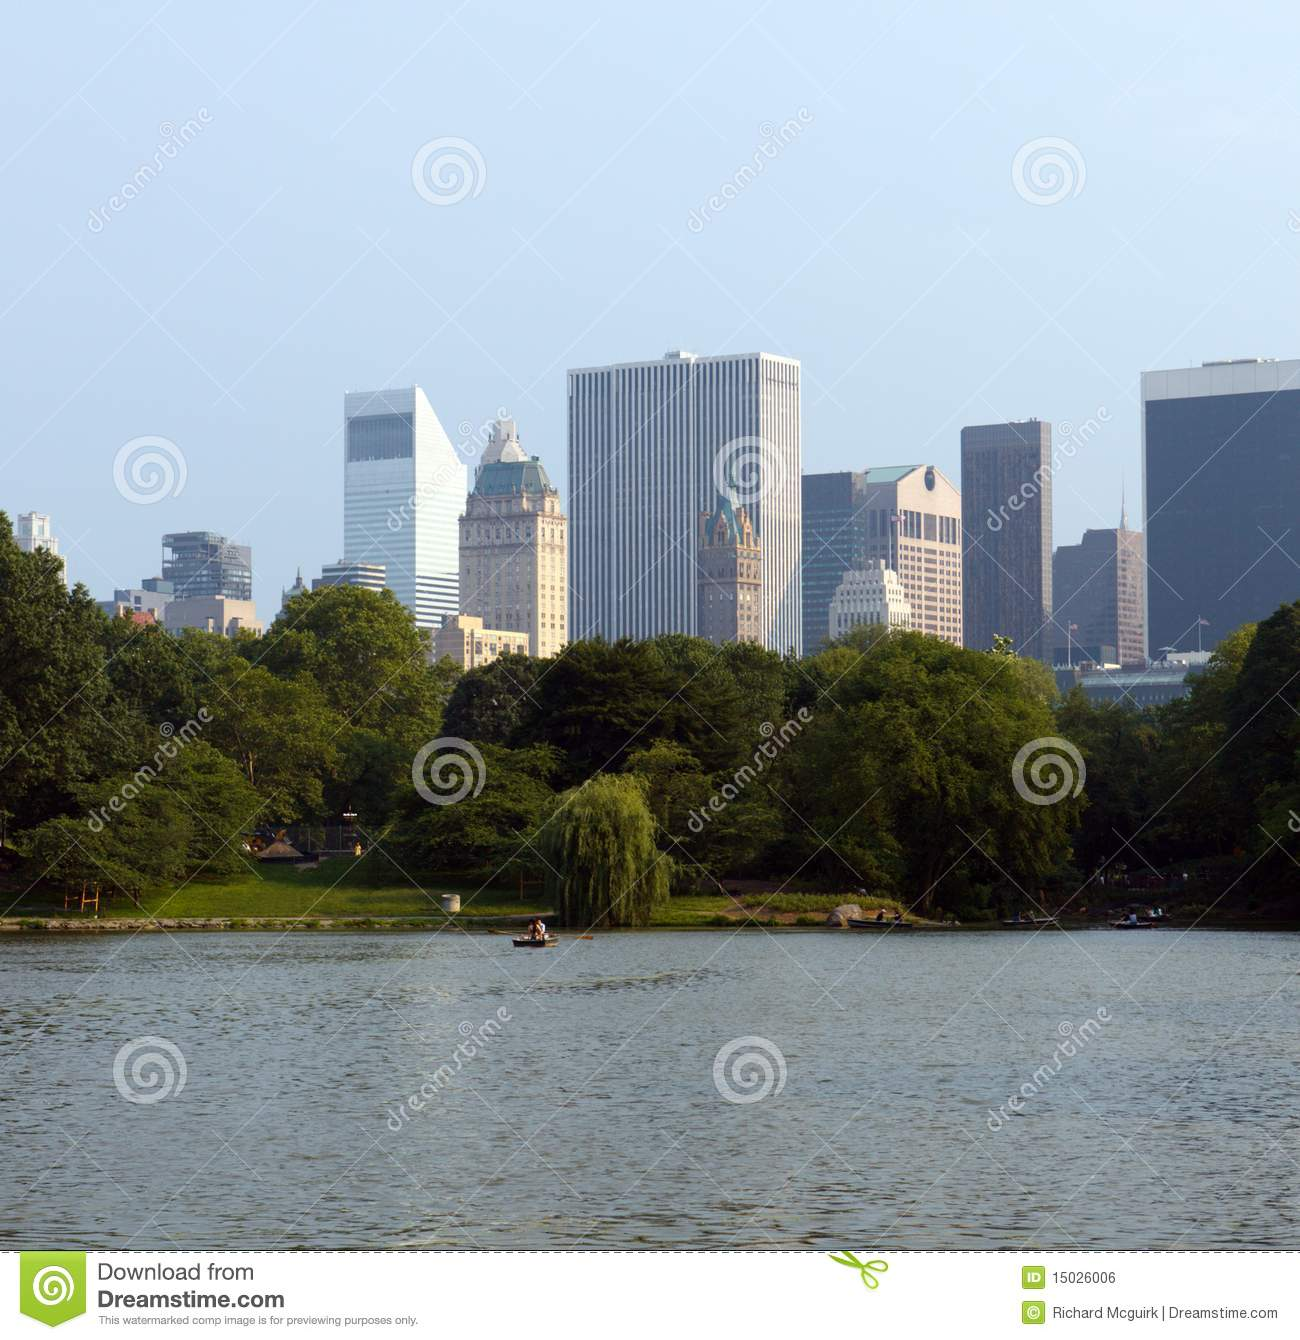 New York City Skyline Backdrop http://www.dreamstime.com/royalty-free-stock-image-new-york-city-image15026006